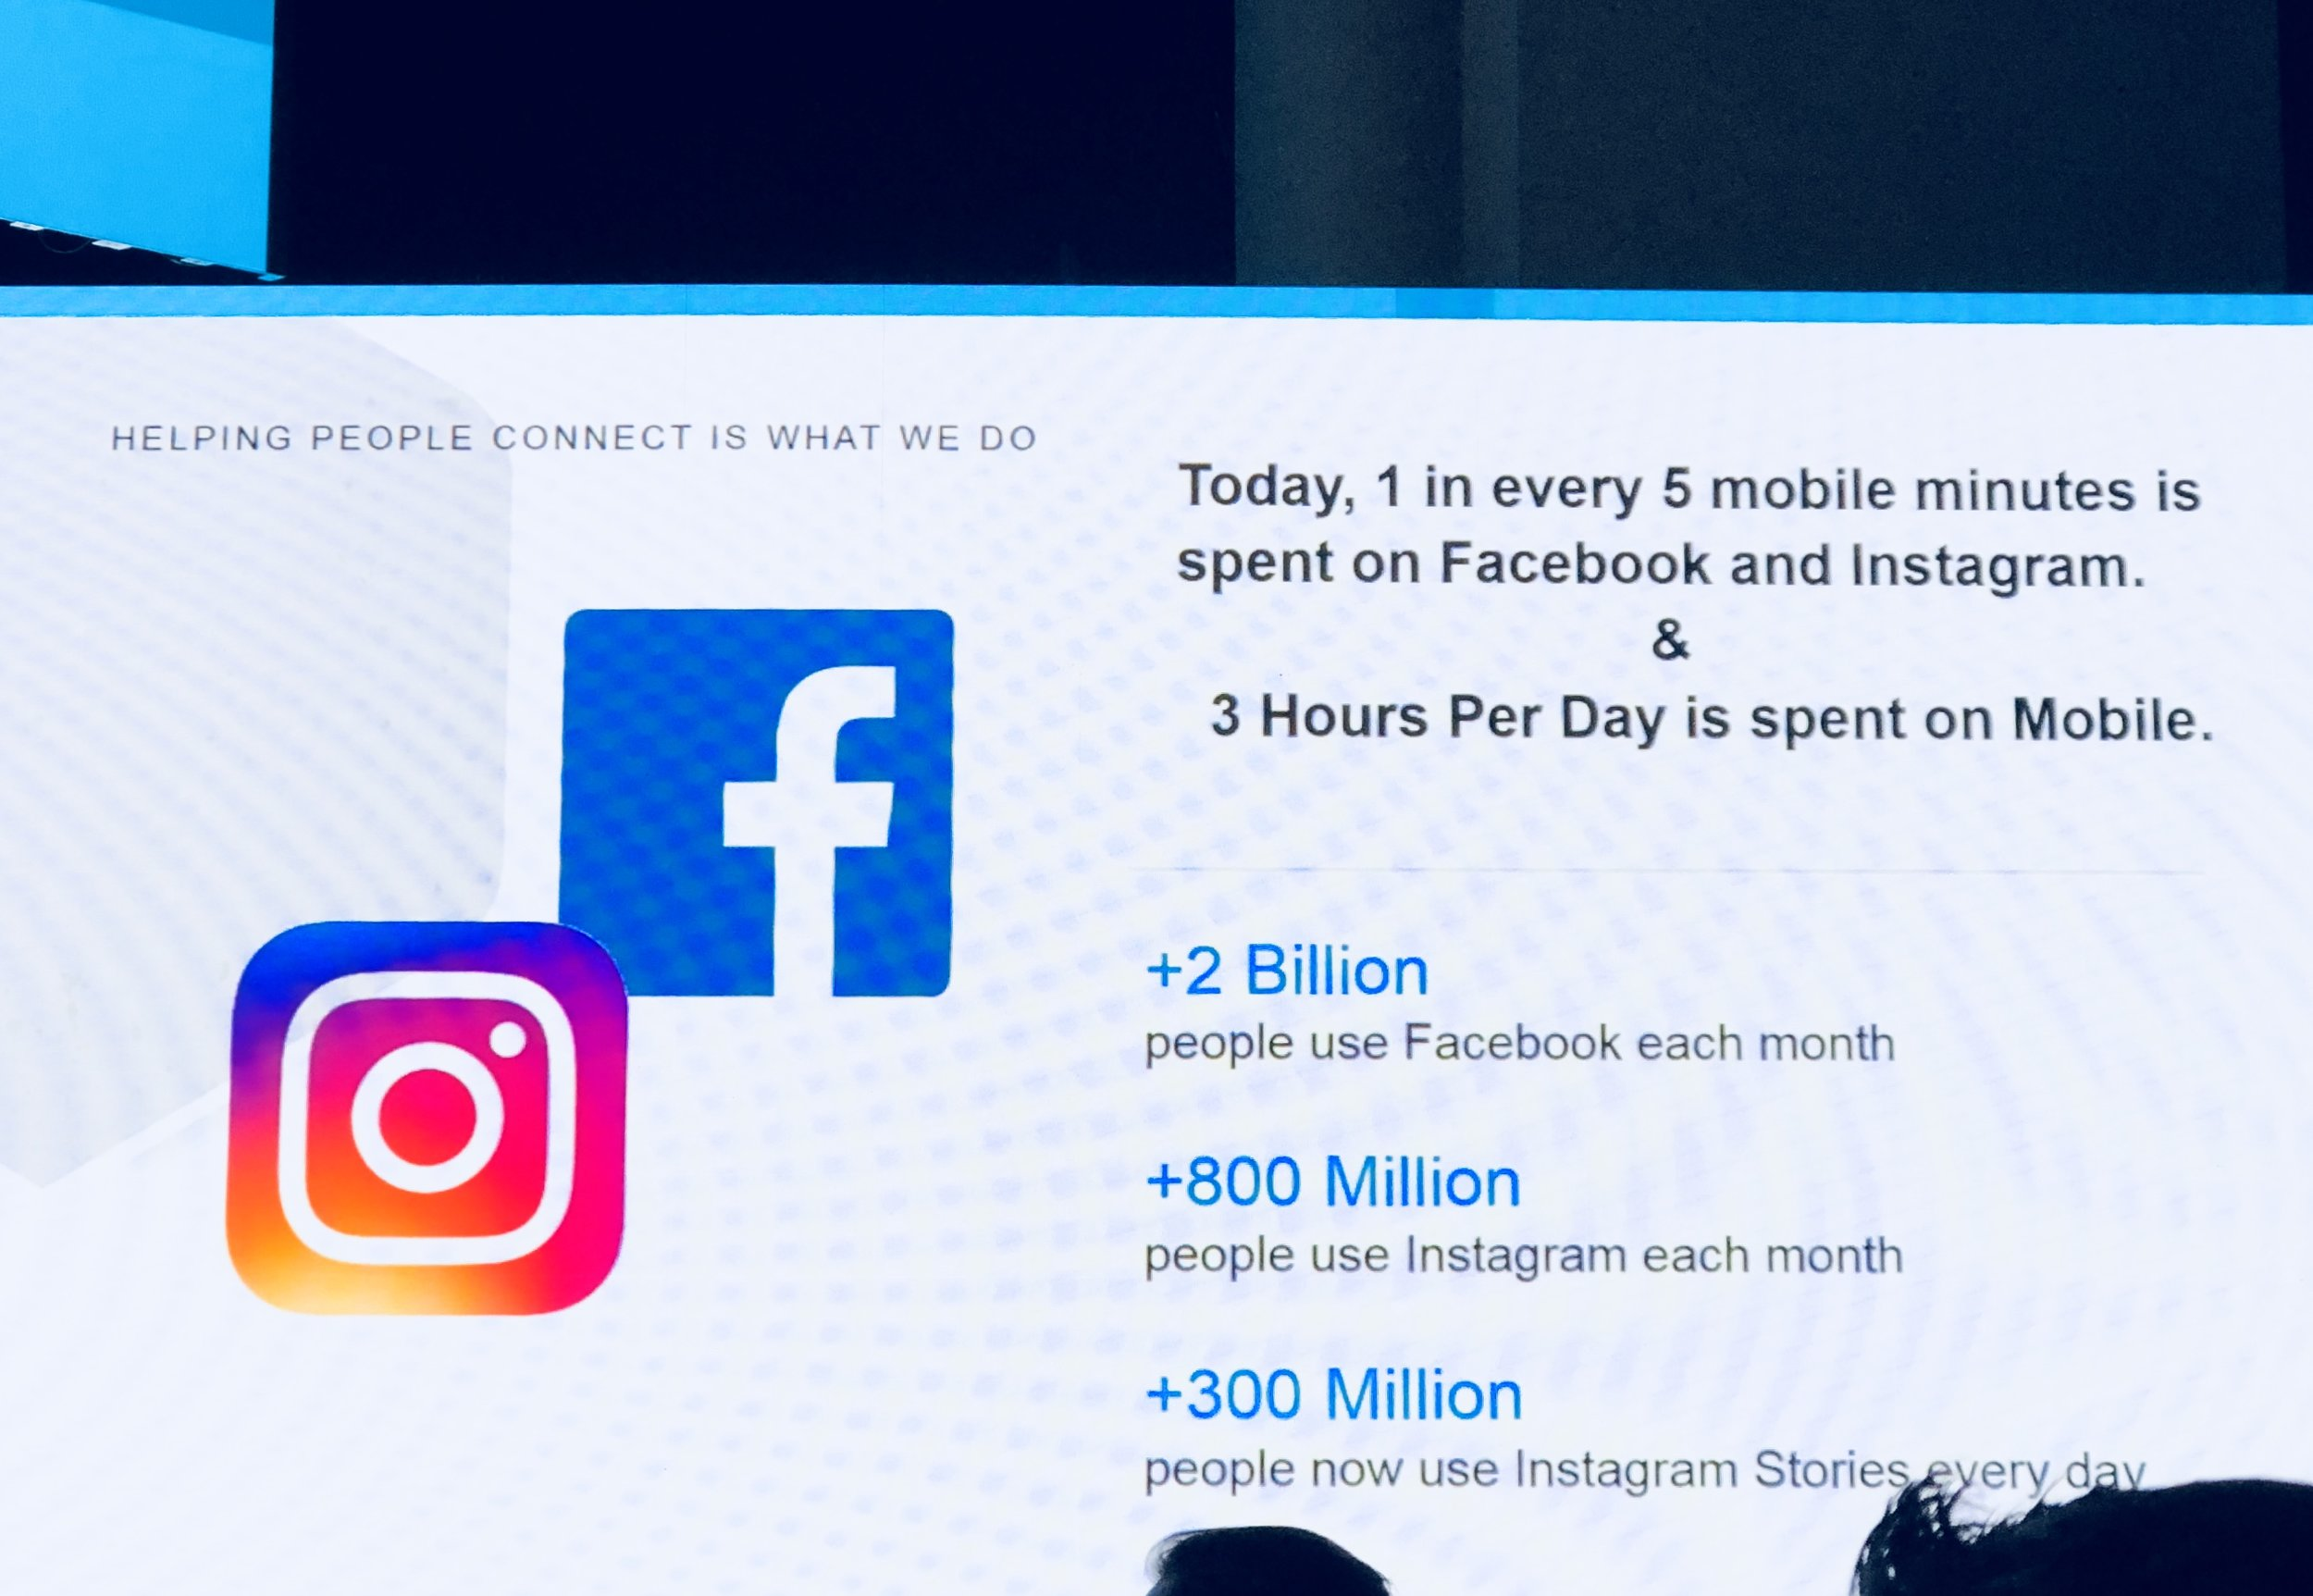 """1 in 5 """"MOBILE"""" minutes are spend on Facebook and Instagram - Is your home marketed """"Social Media Smart""""?"""